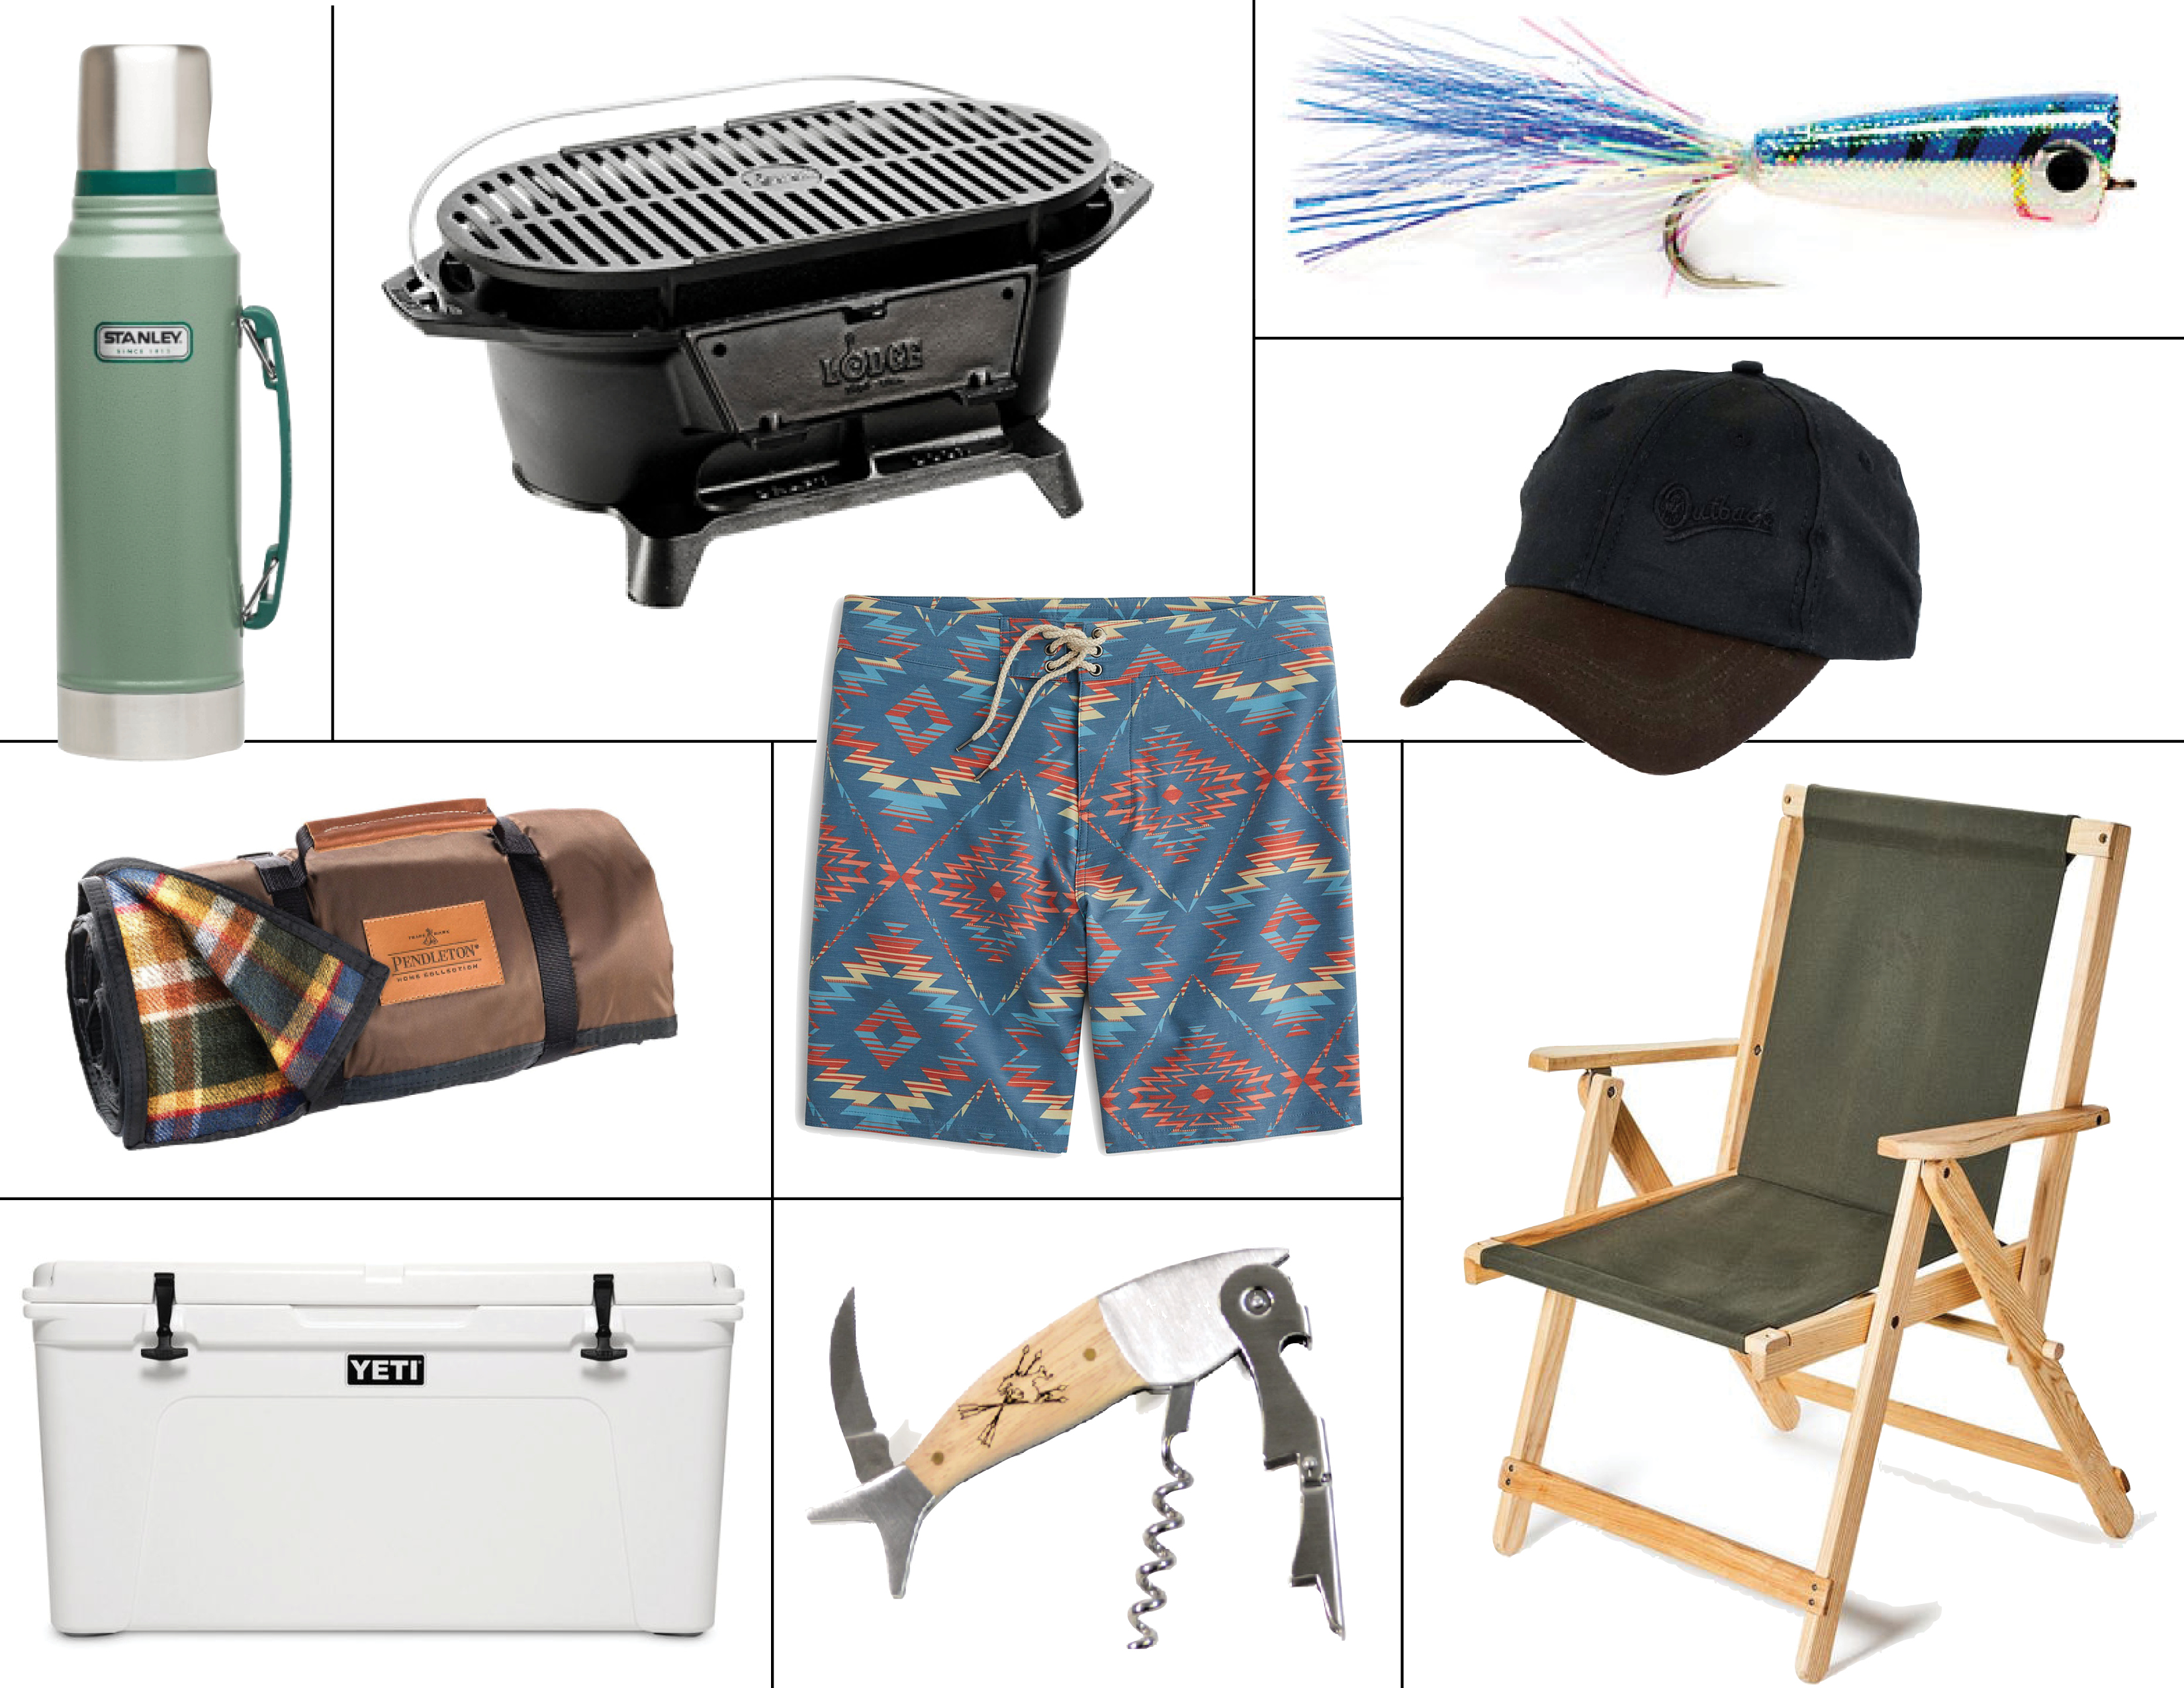 yeti folding chair cane seat repair father s day gifts cowboys and indians magazine